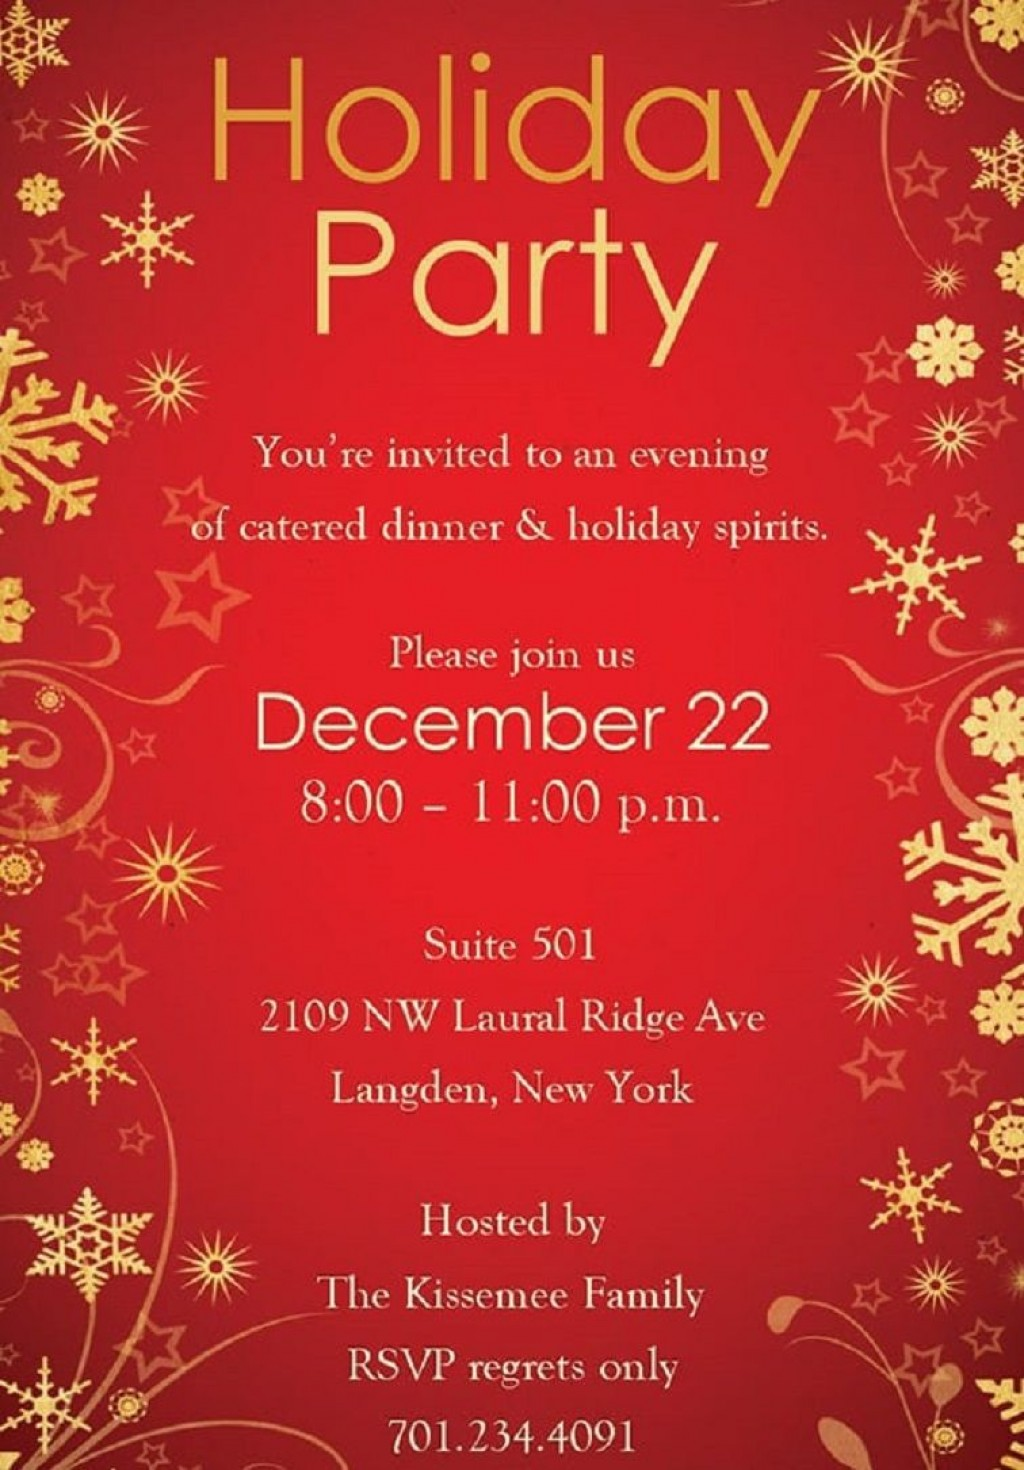 003 Singular Free Holiday Invite Template Example  Templates Party Ticket For EmailLarge